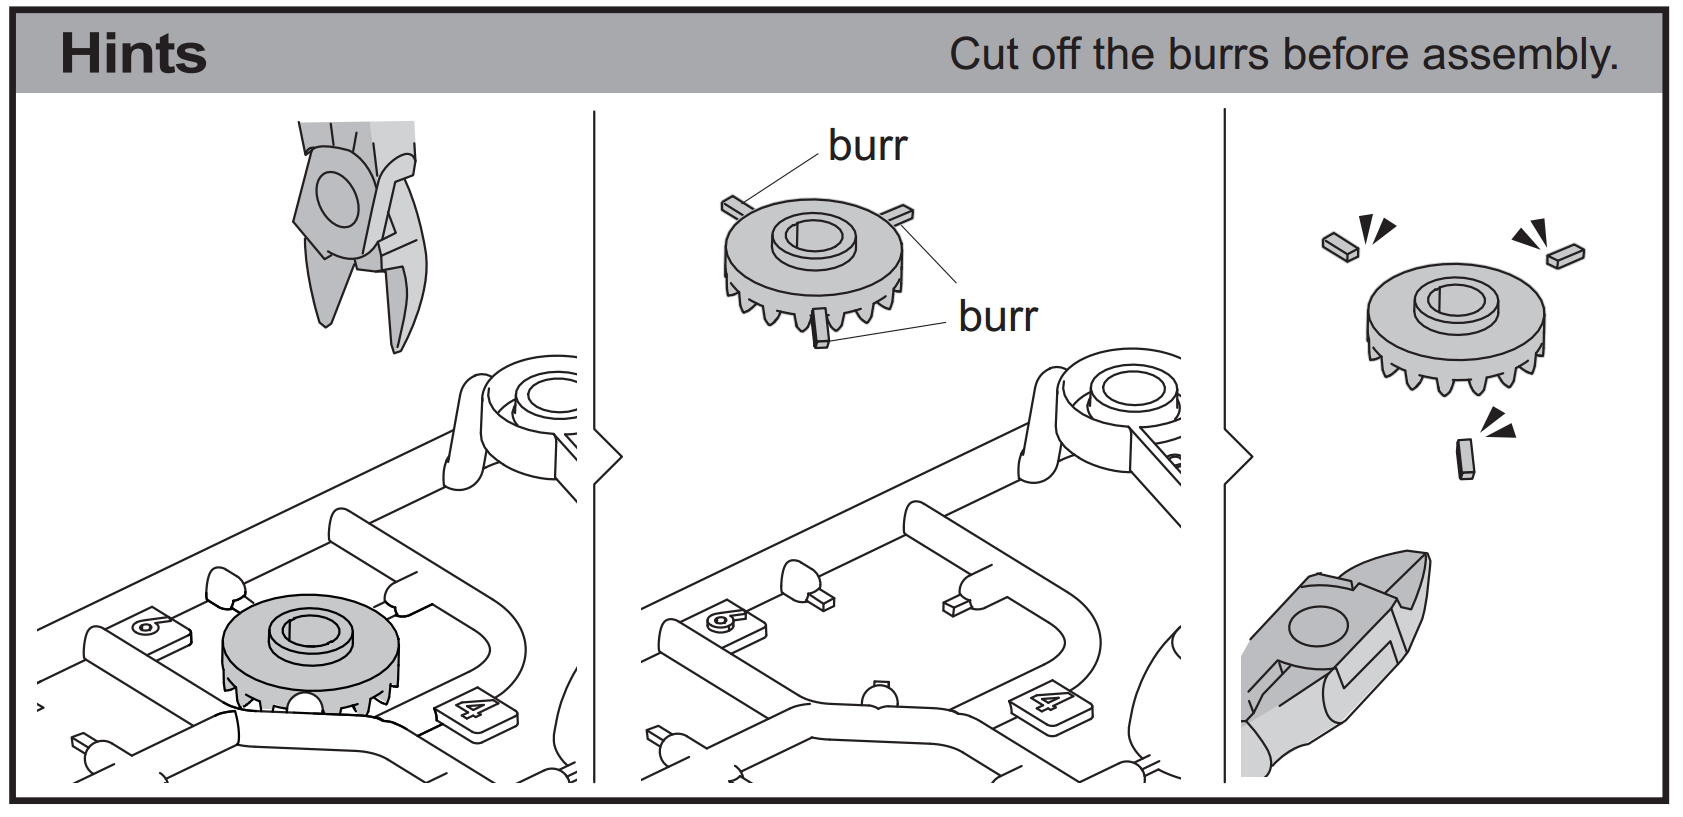 cutburrsbeforeassembly.png